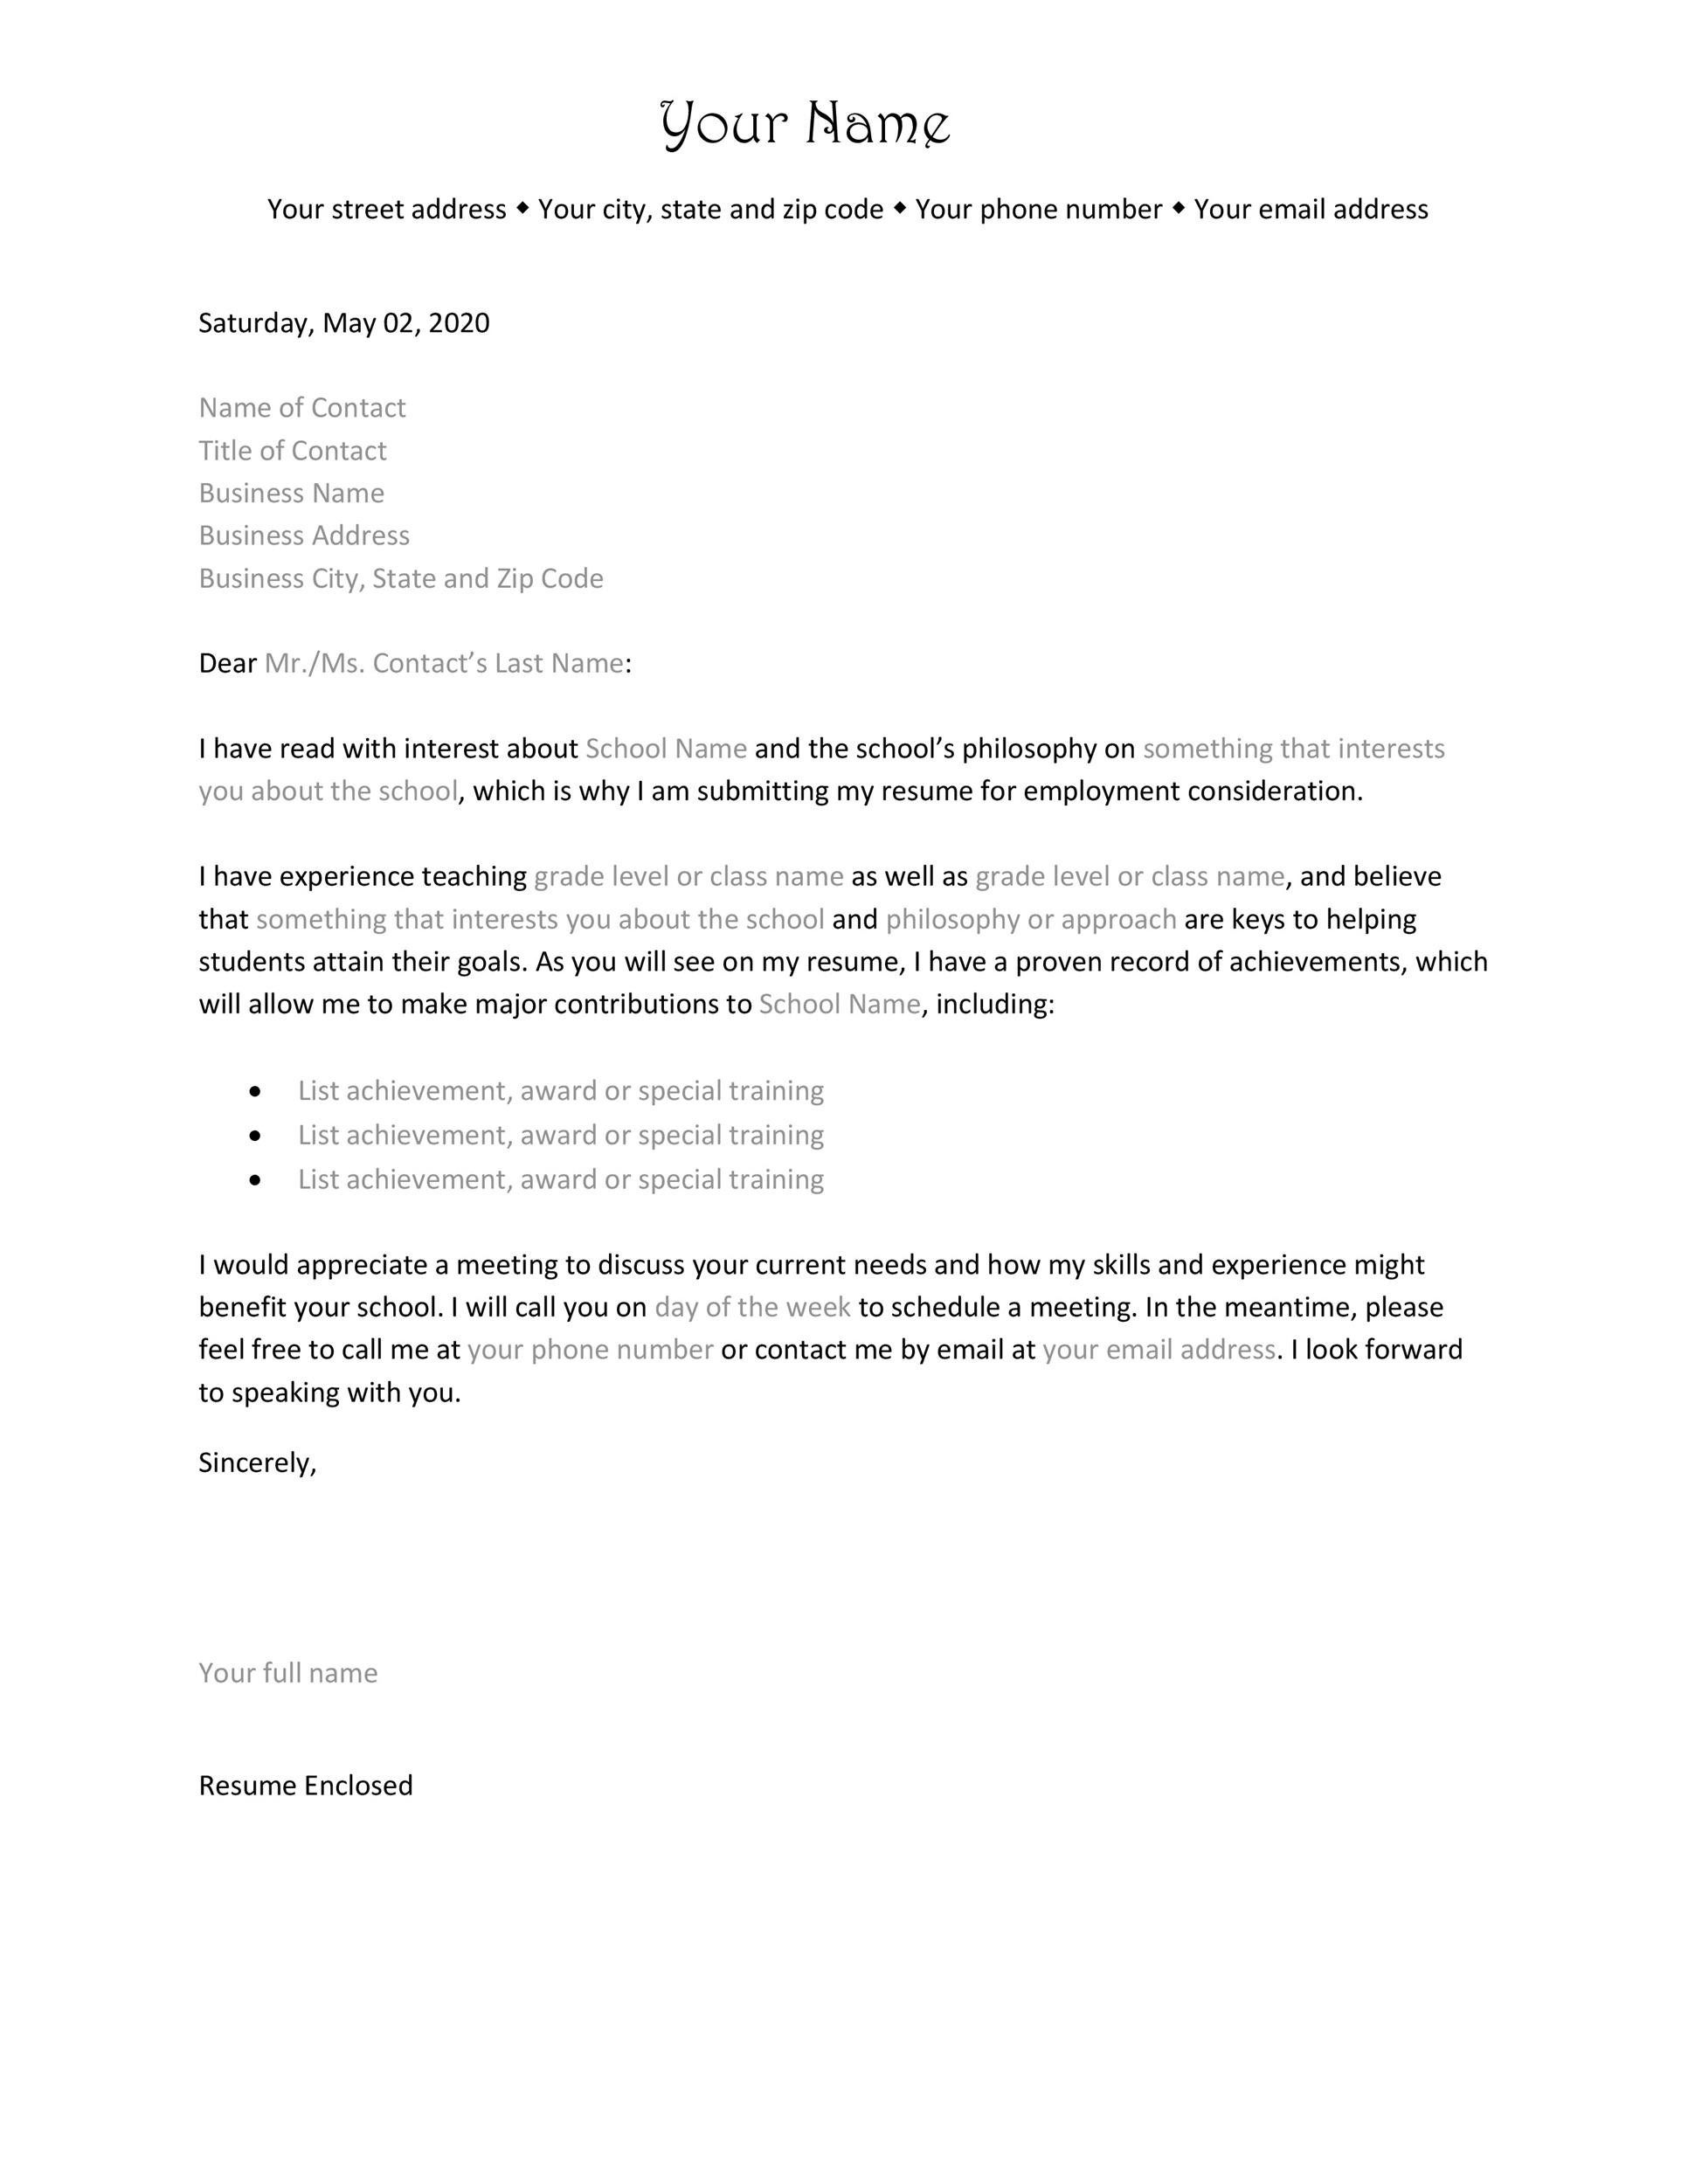 amazing letter of interest samples templates letter of interest 03